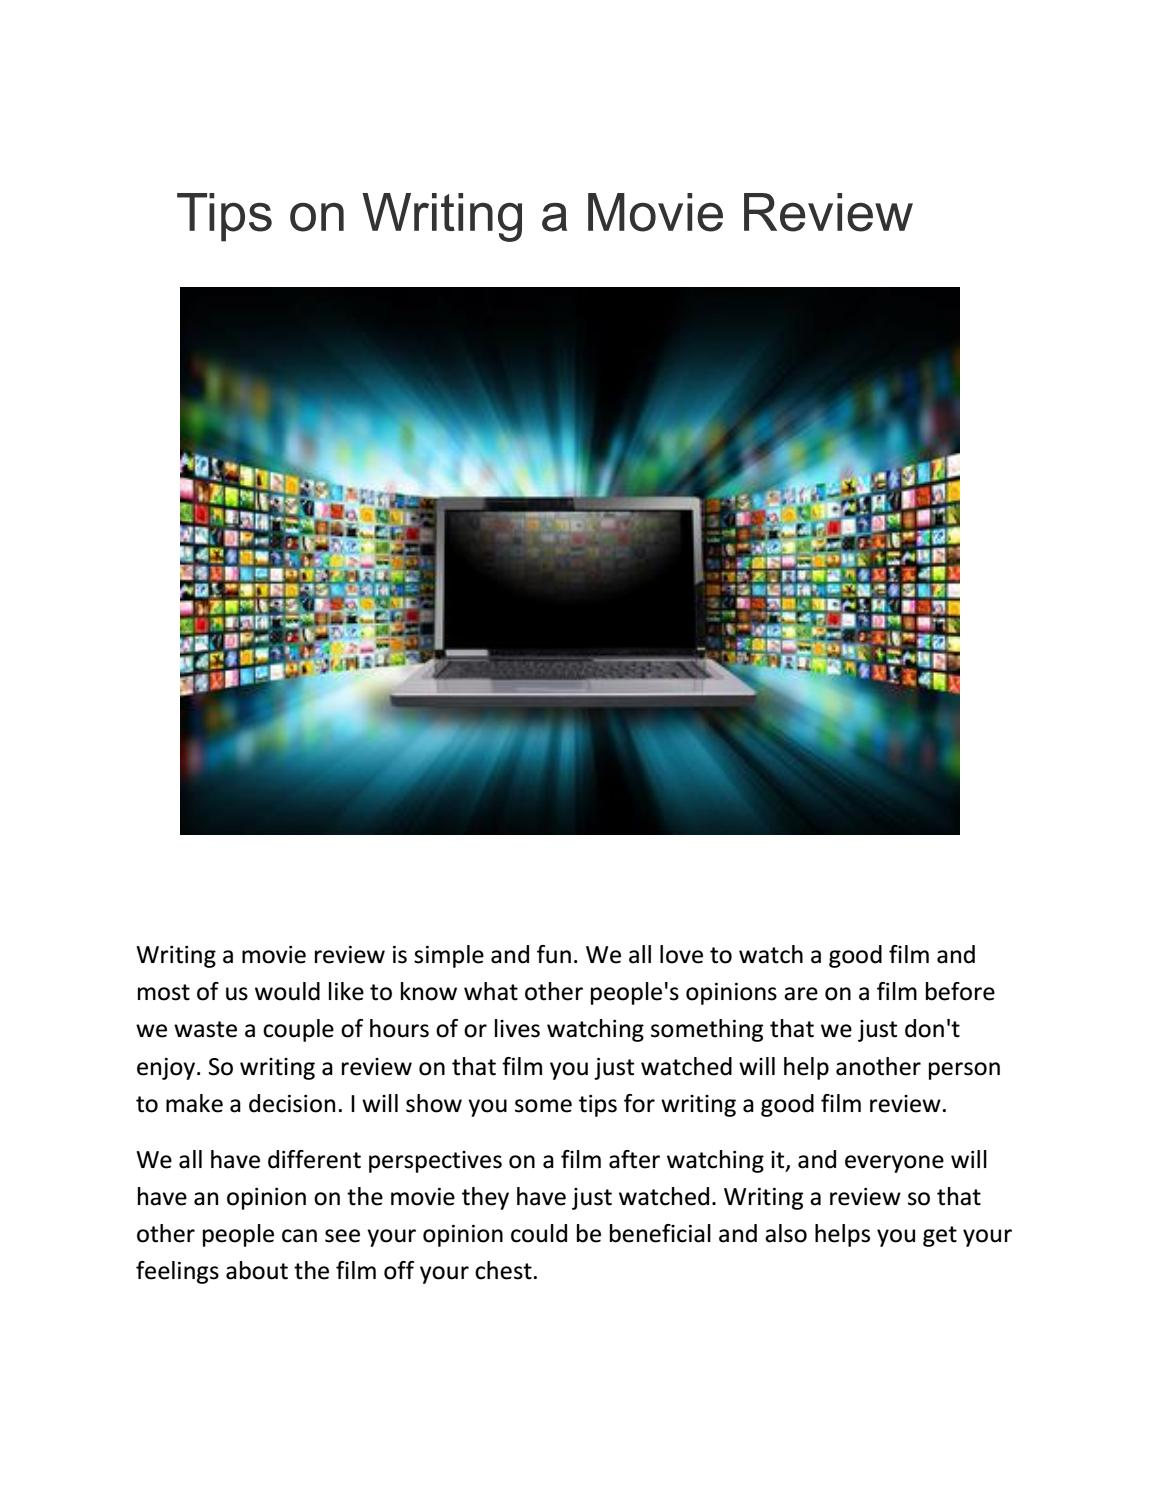 movie writing tips Writing a movie review is not only an assignment that often college or high school students get but also something that journalists and bloggers do for newspapers, magazines, and online resources.